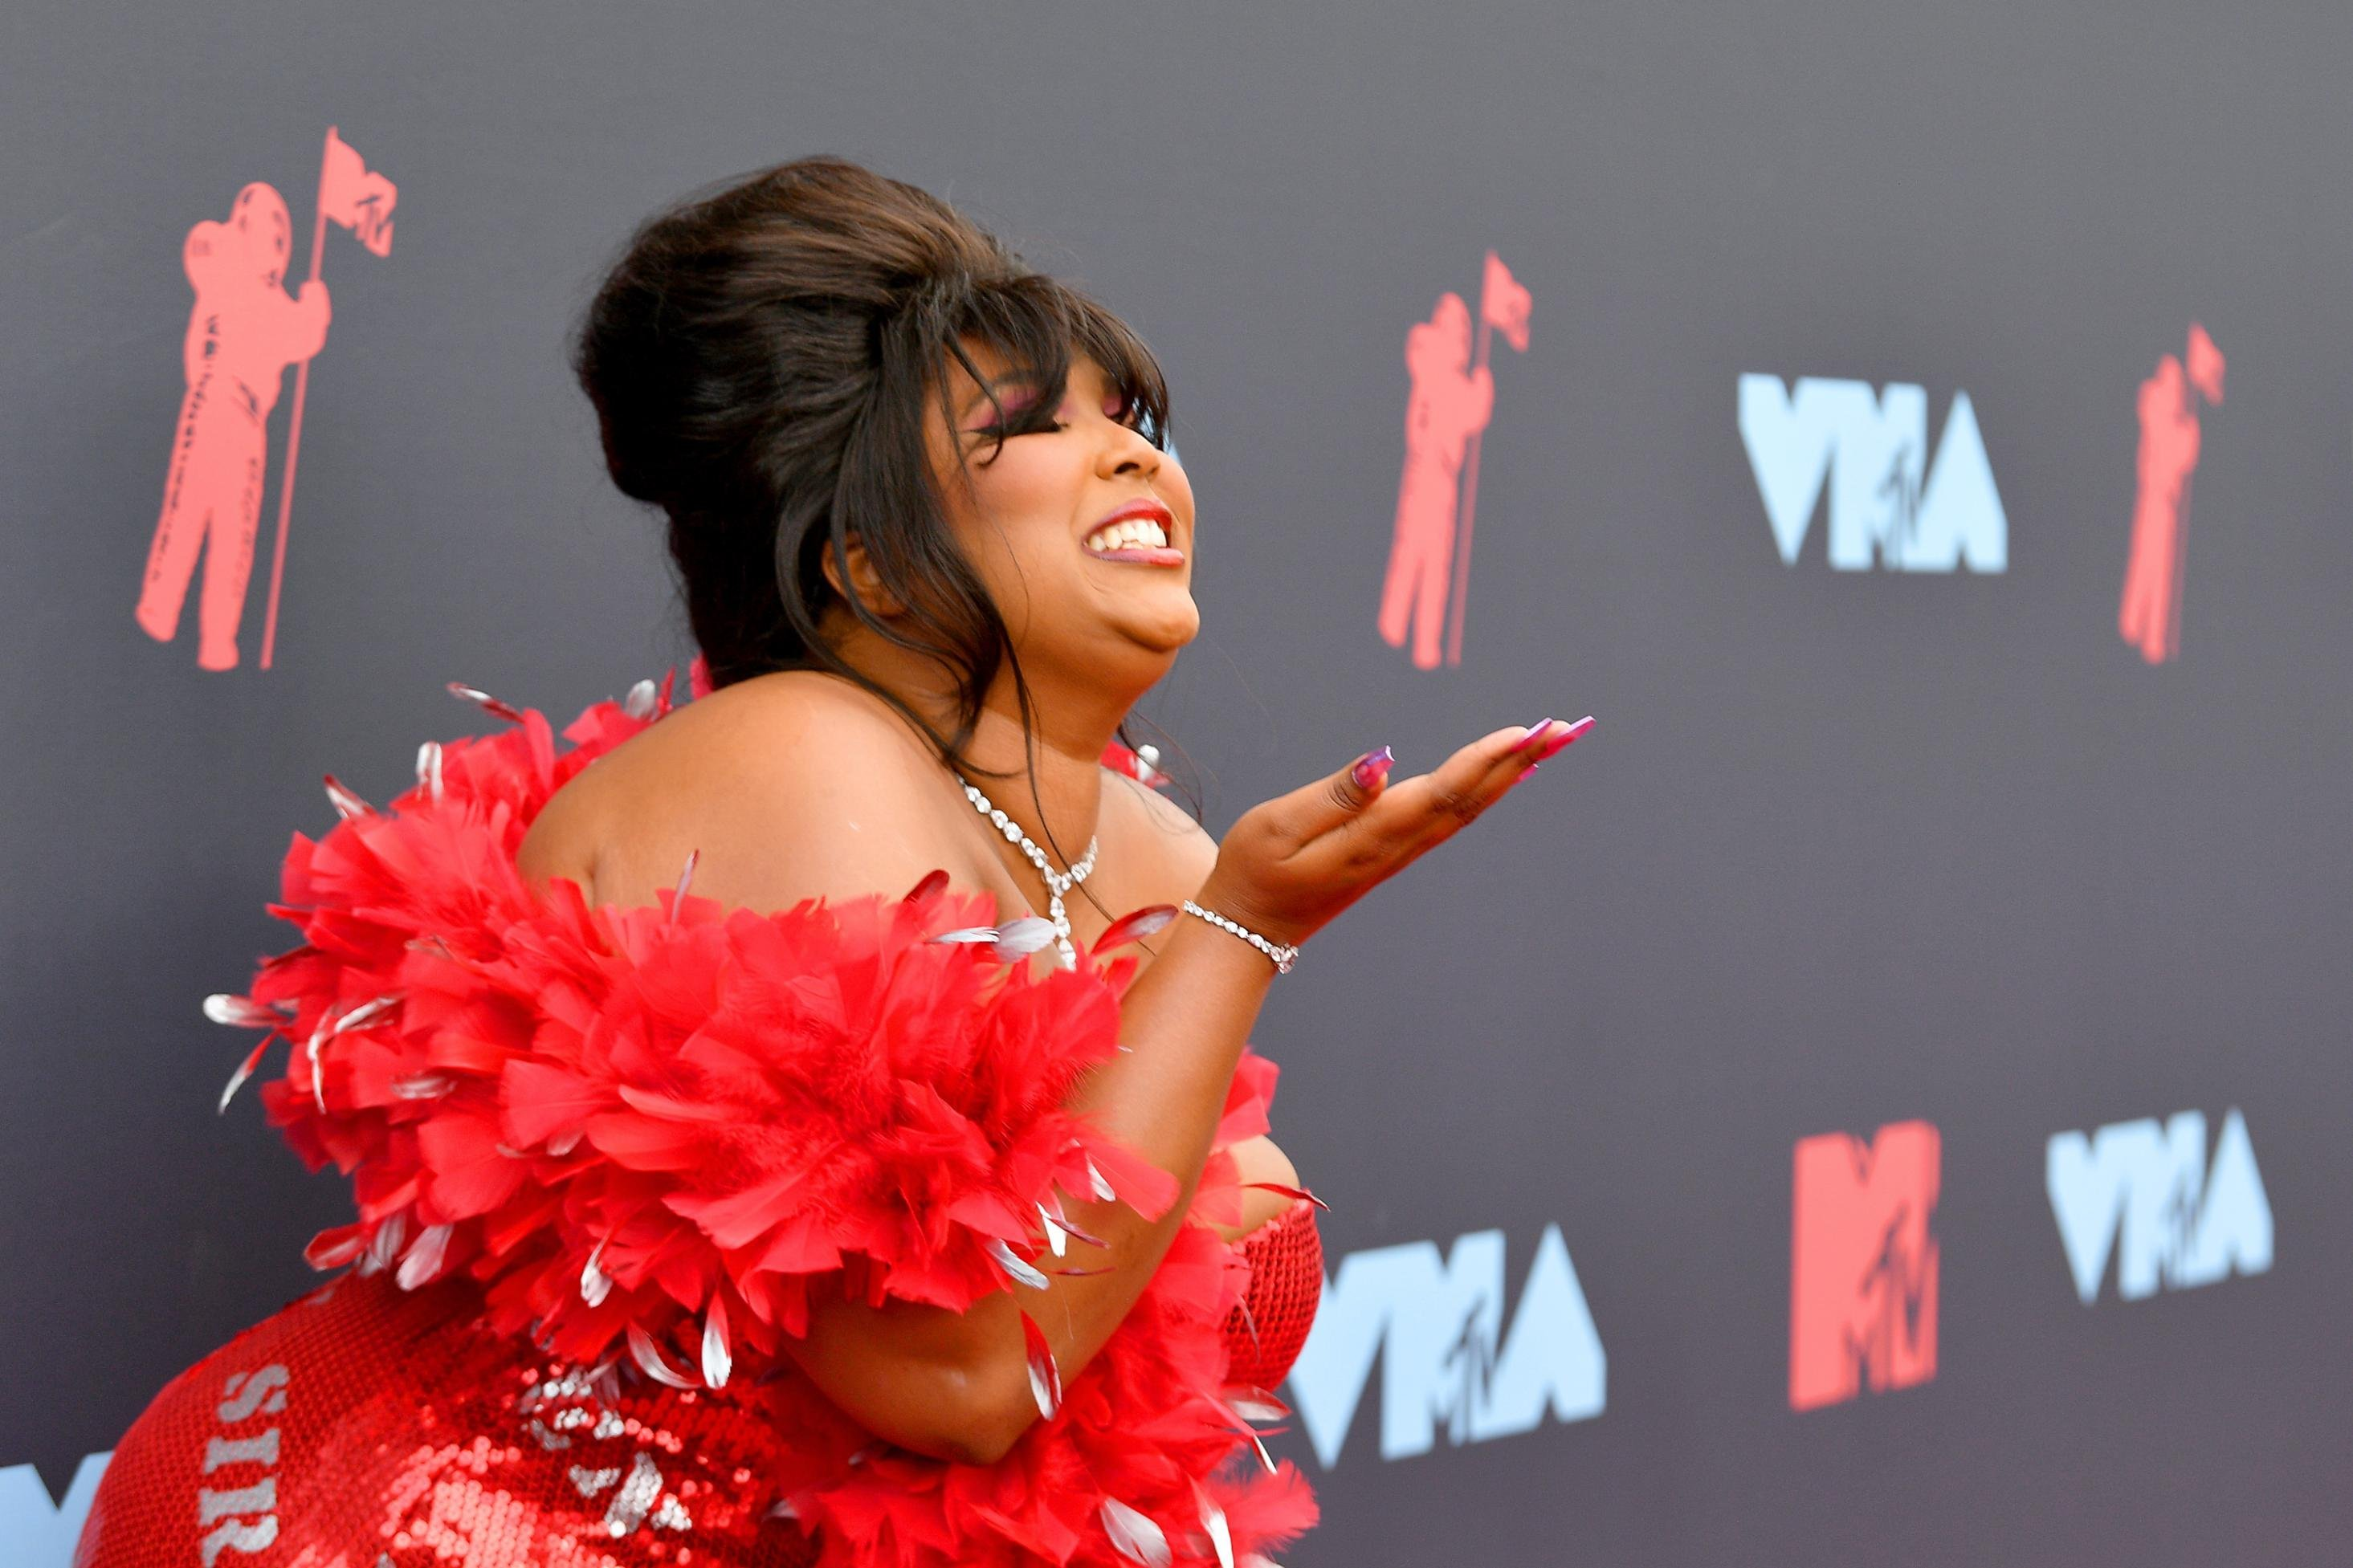 Lizzo celebrates 'Entertainer of the Year' media accolades